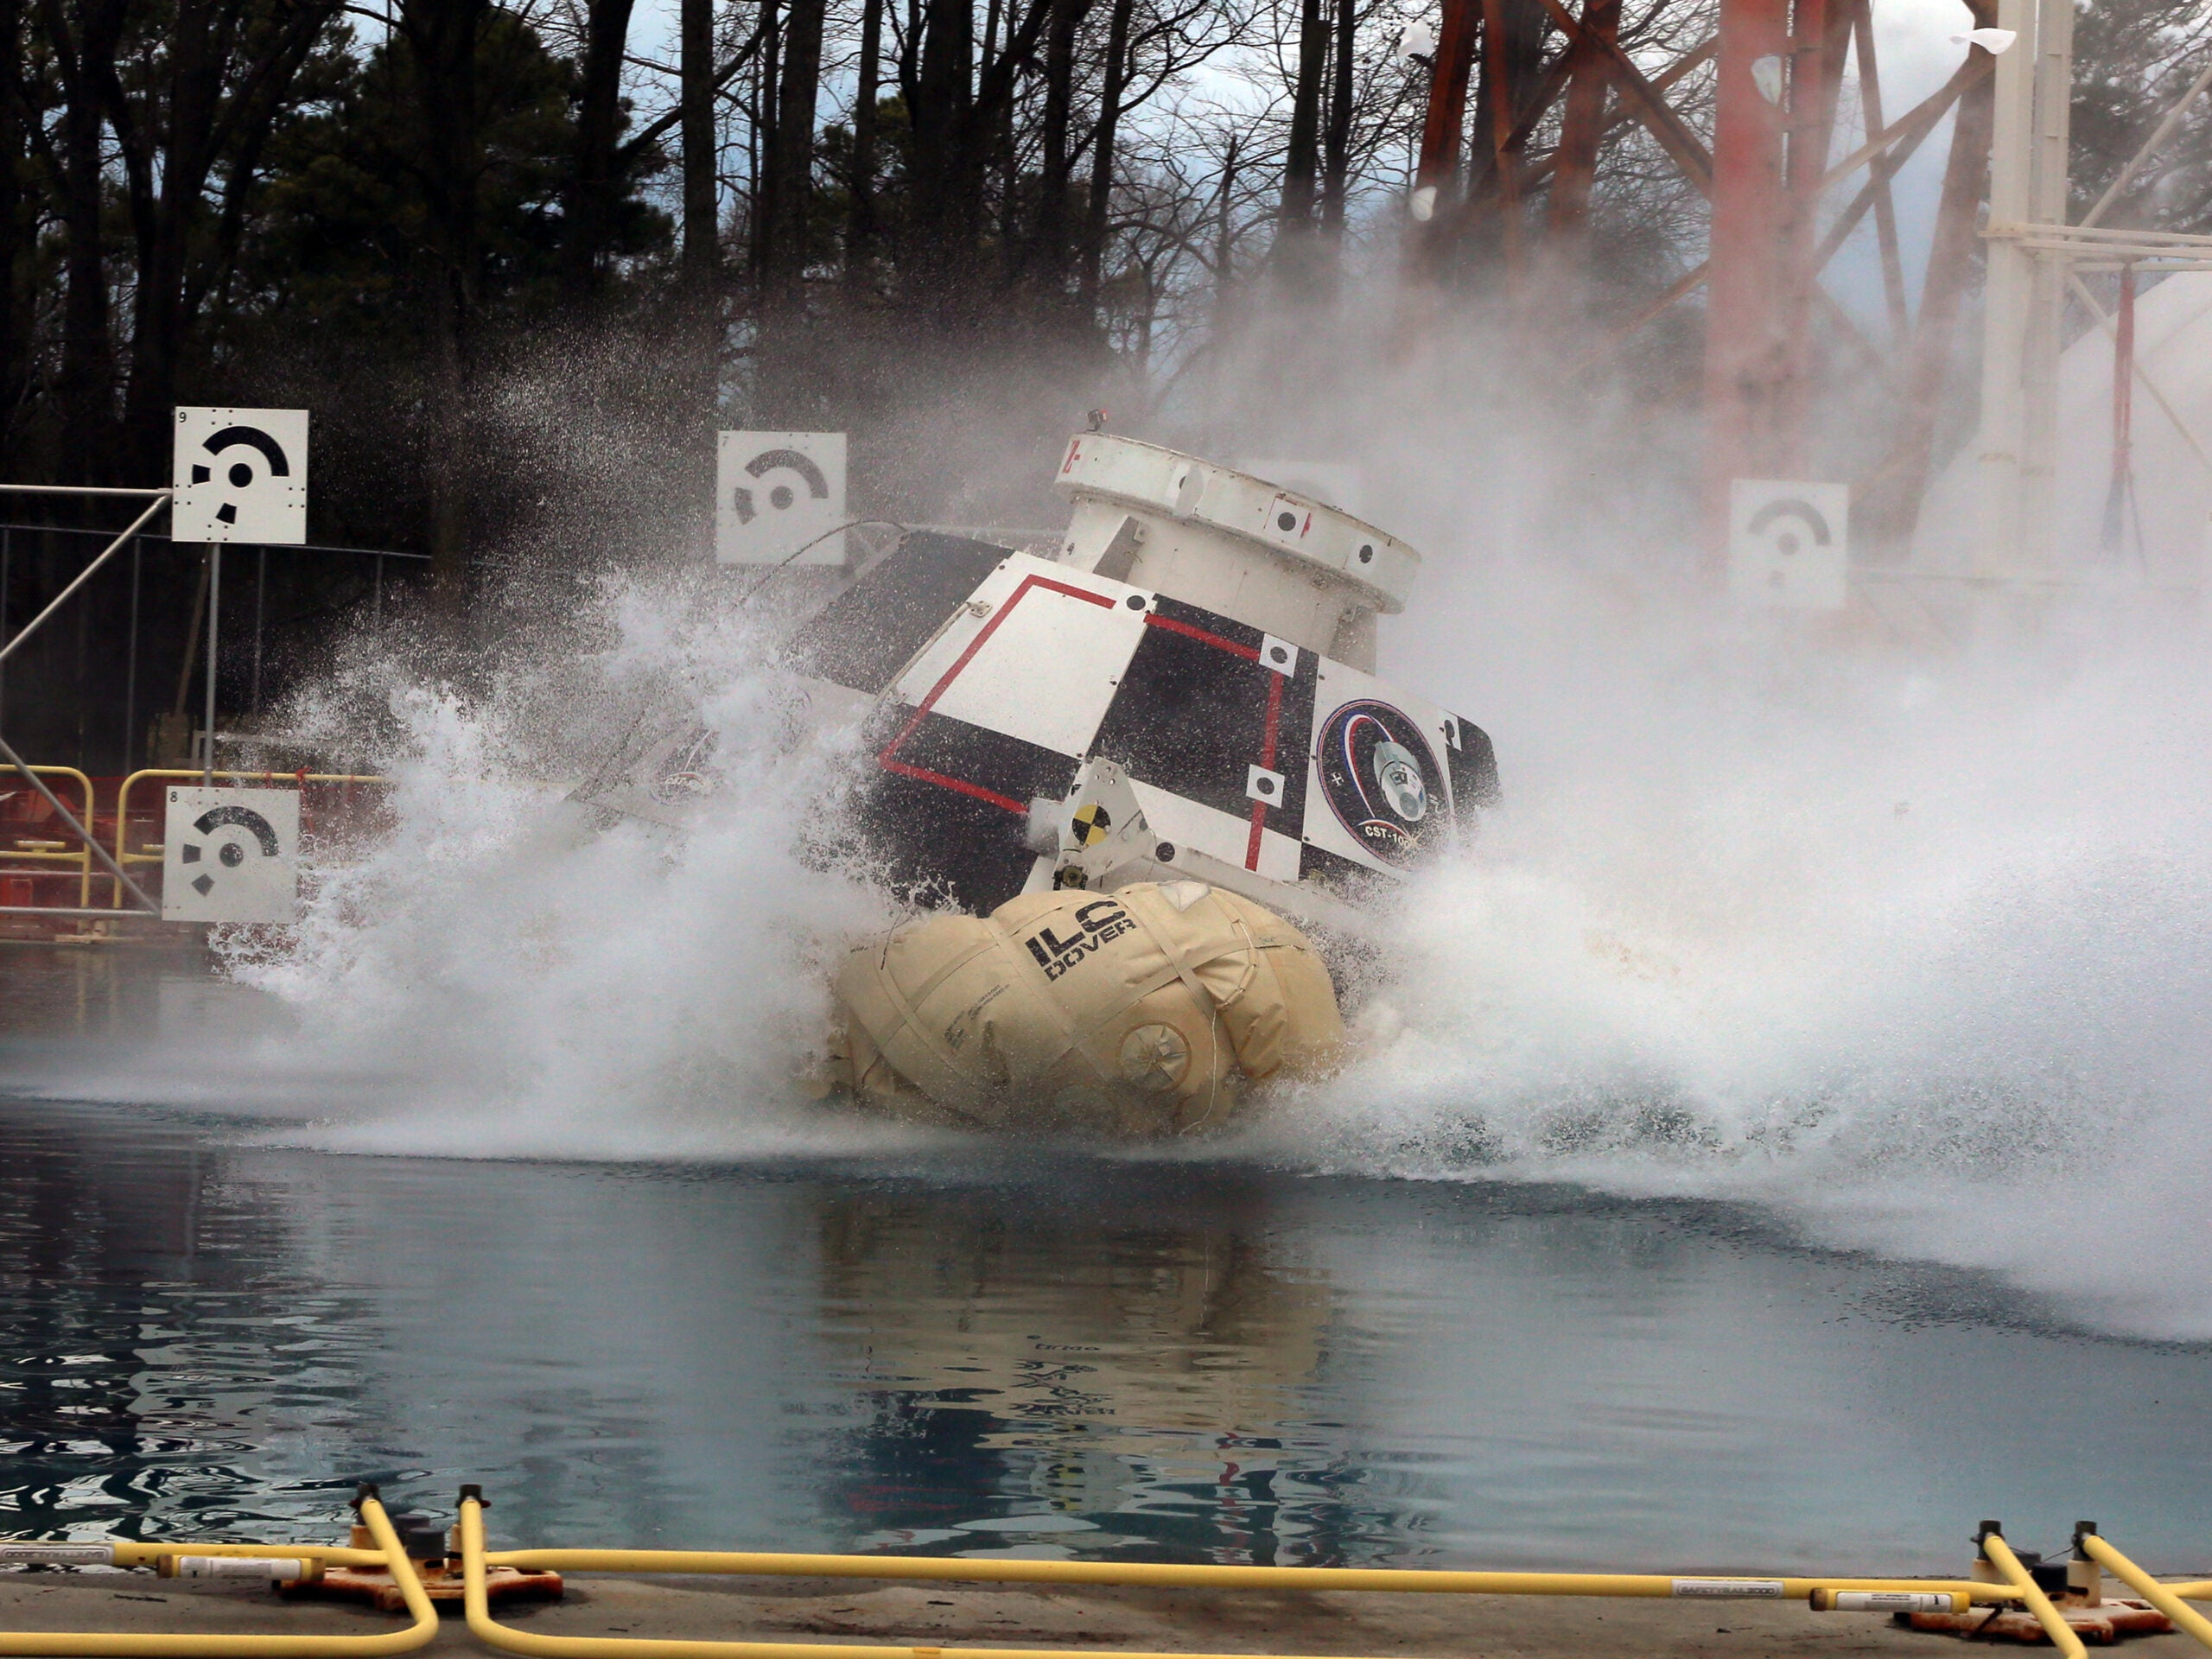 Boeing's Starliner Capsule For Astronauts Completes Water Test